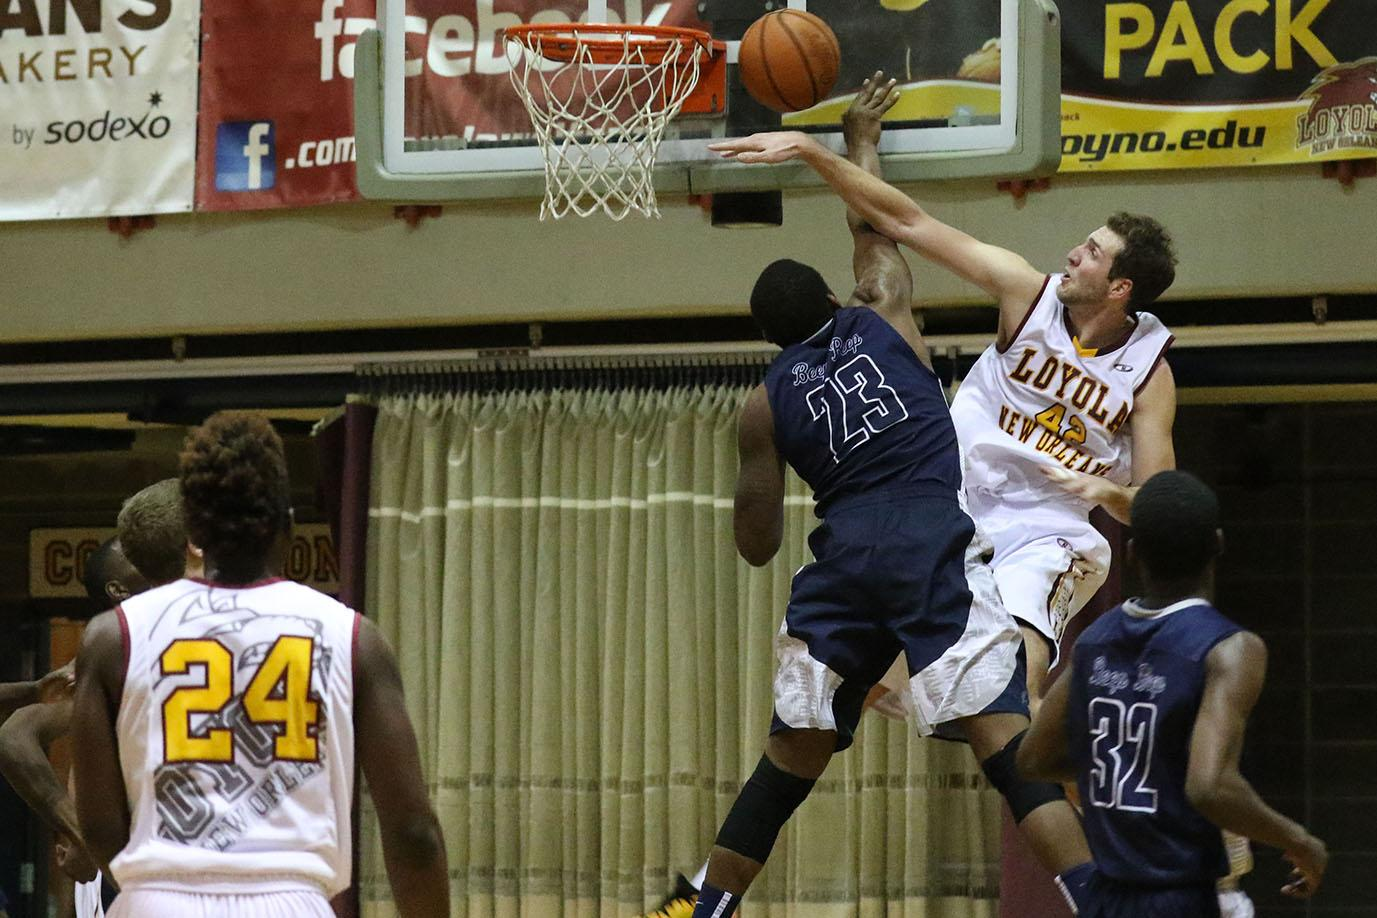 Marcel Hawkins, Dalton State junior forward, blocks a dunk attempt by Nate Pierre, Loyola junior center, in the second half of their game in The Den on Jan 2, 2016. Loyola fell to SSAC rival Dalton State 70-67 despite outscoring them in the second half 37-35.